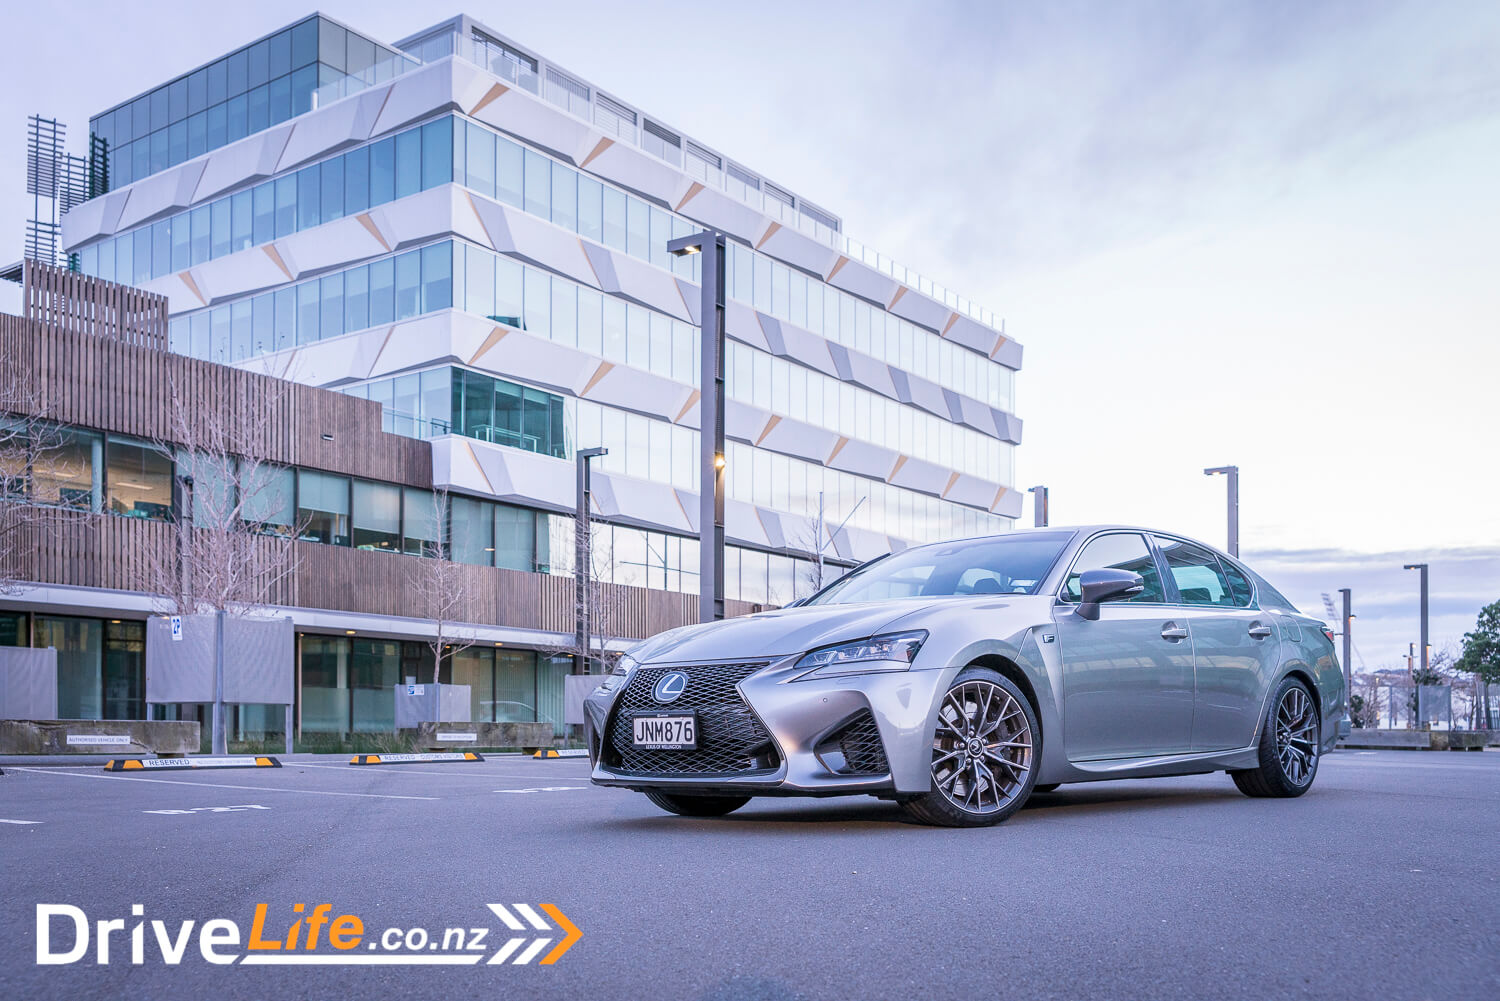 DriveLife-Car-Review-2016-Lexus-GS-F-6